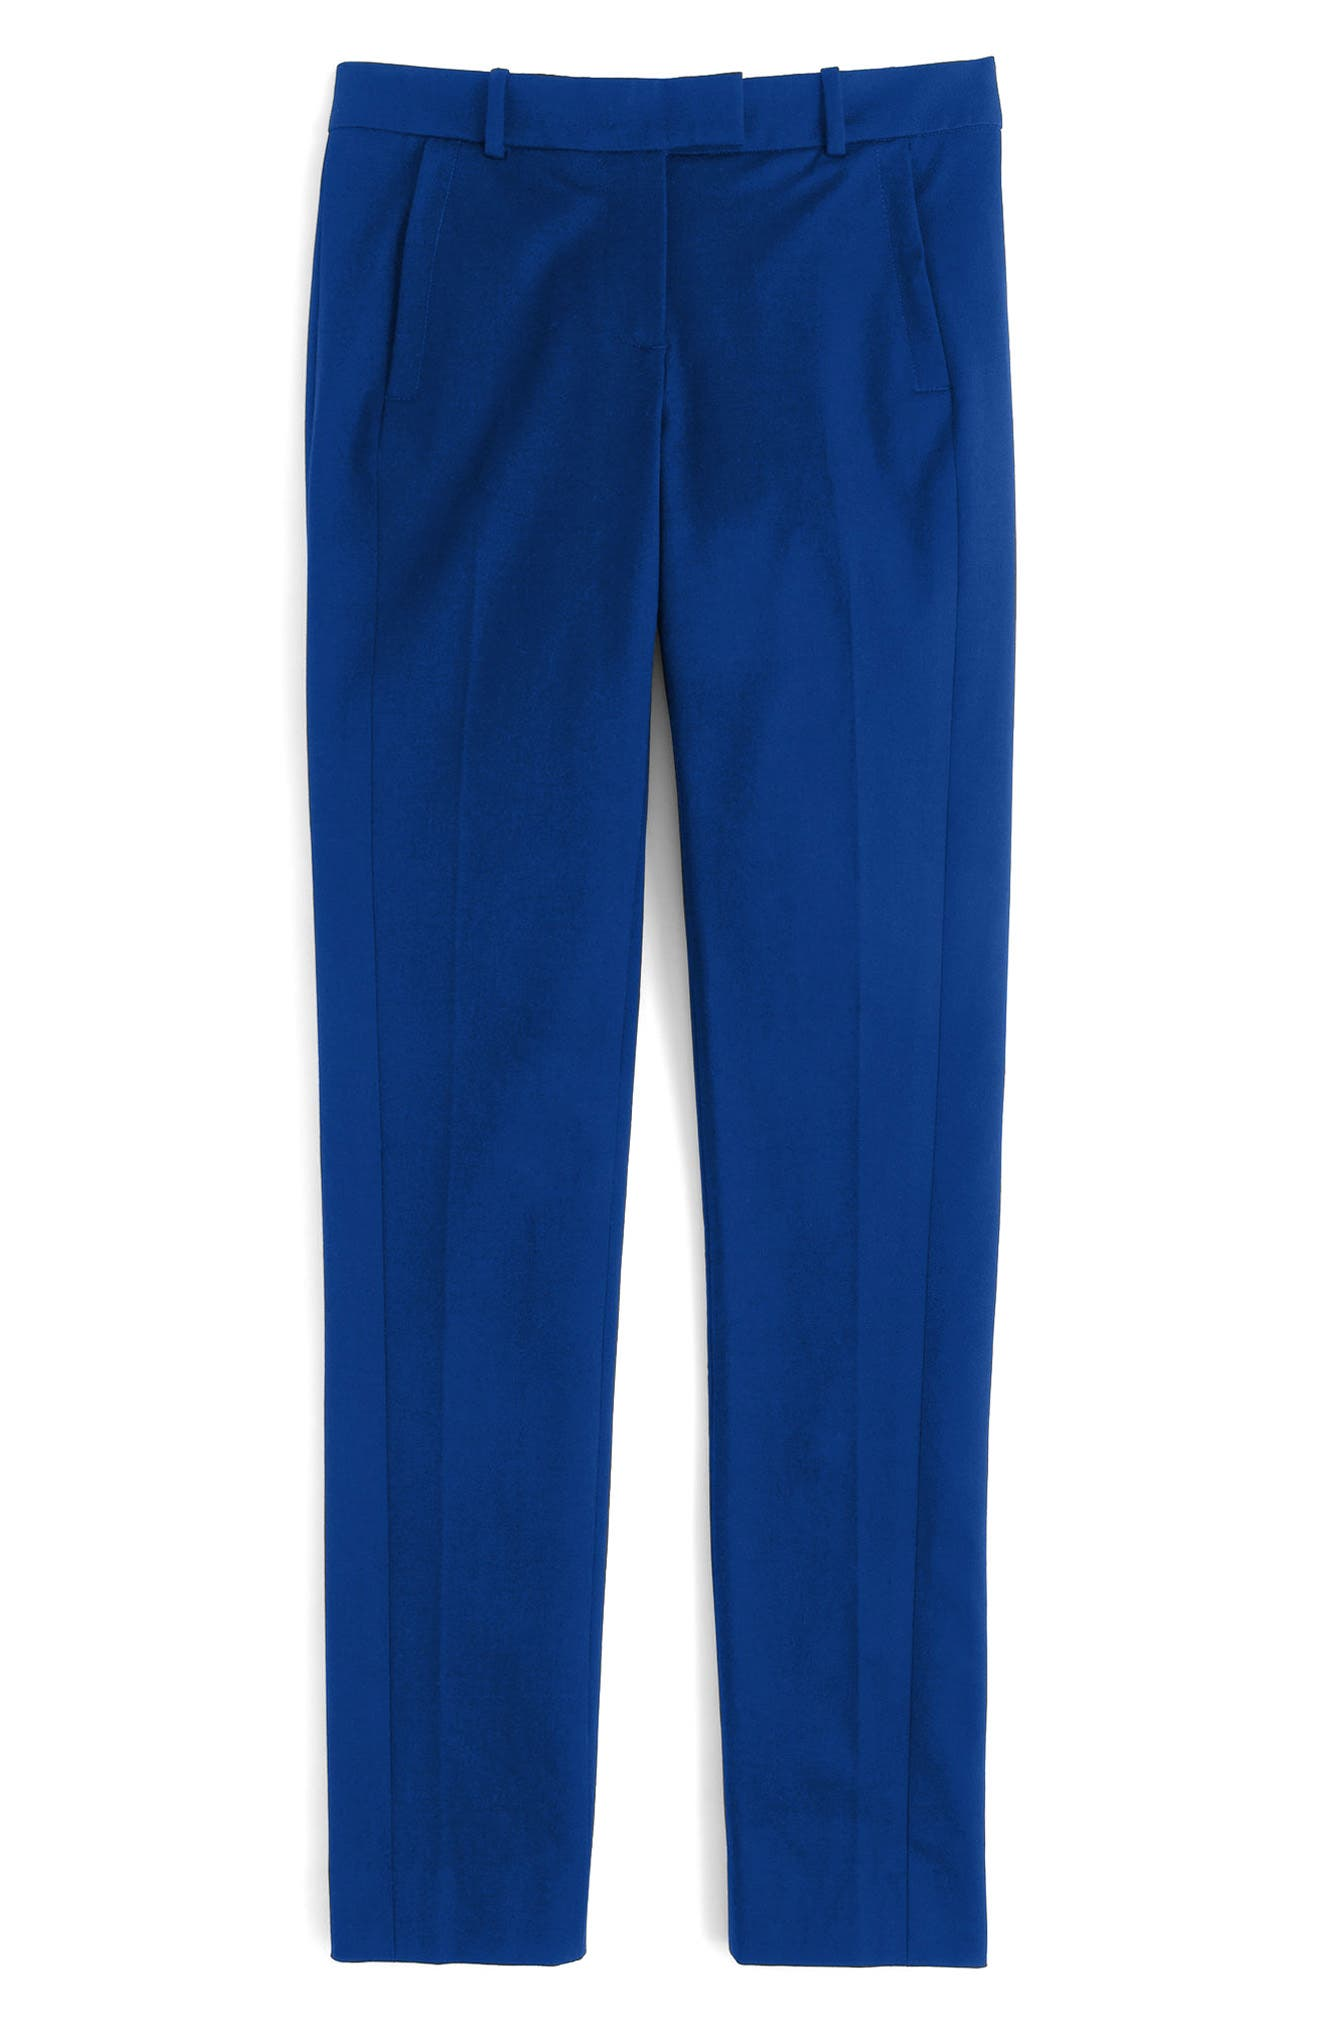 J.Crew Maddie Bi-Stretch Cotton Pants (Regular & Petite)